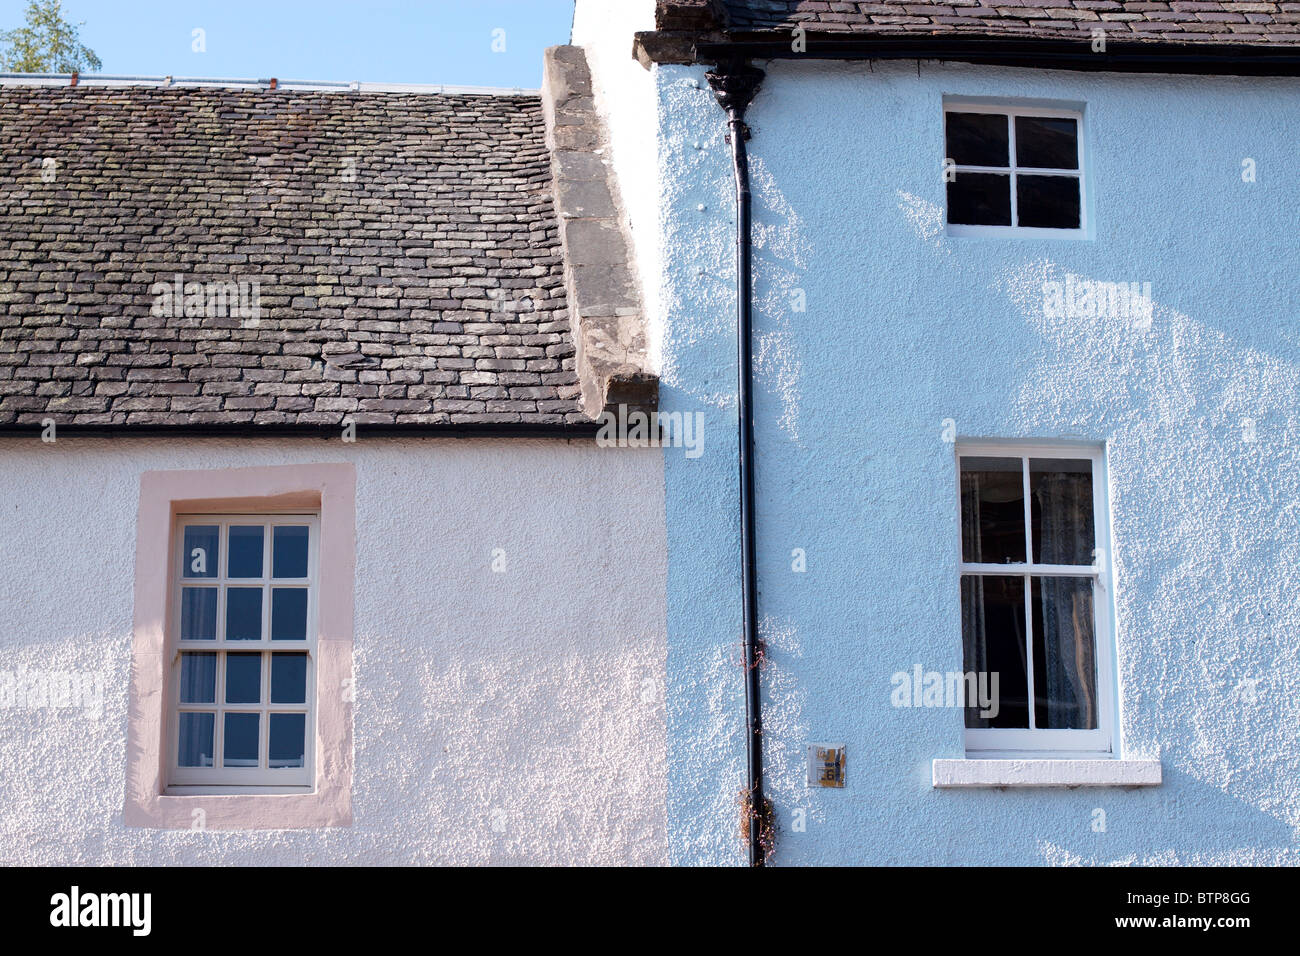 Scotland, Dunkeld, Exterior of a building - Stock Image